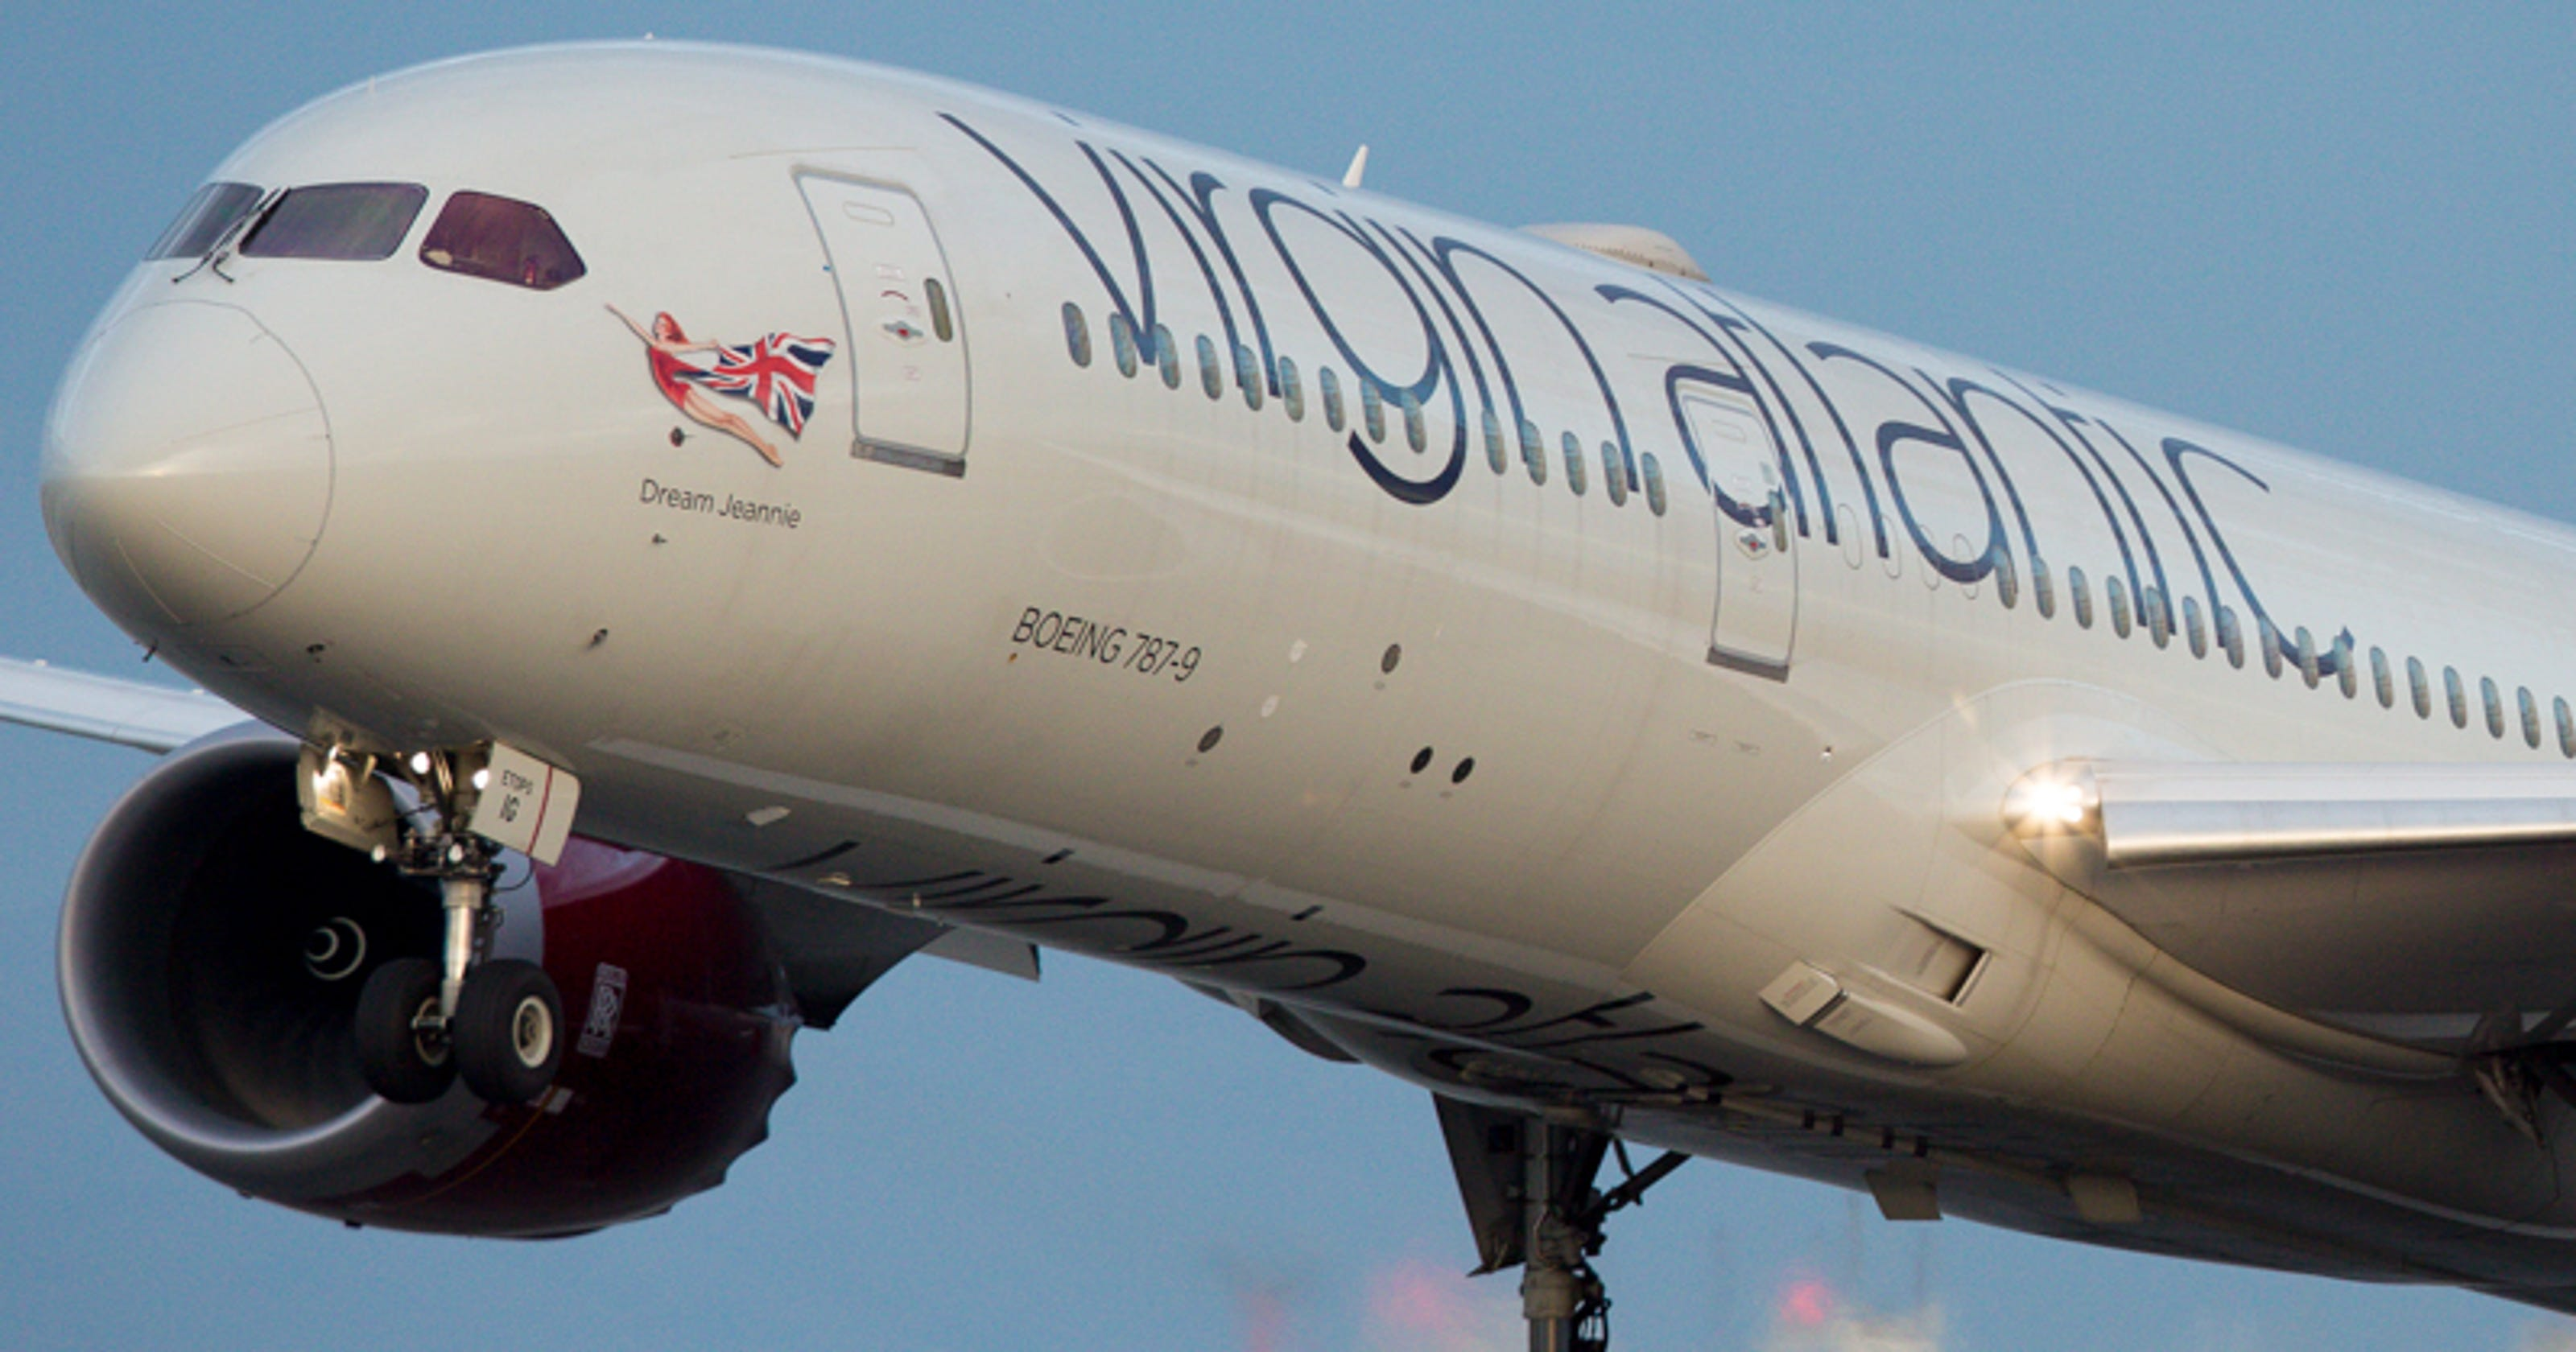 Virgin Atlantic plane fire: Phone battery pack suspected cause